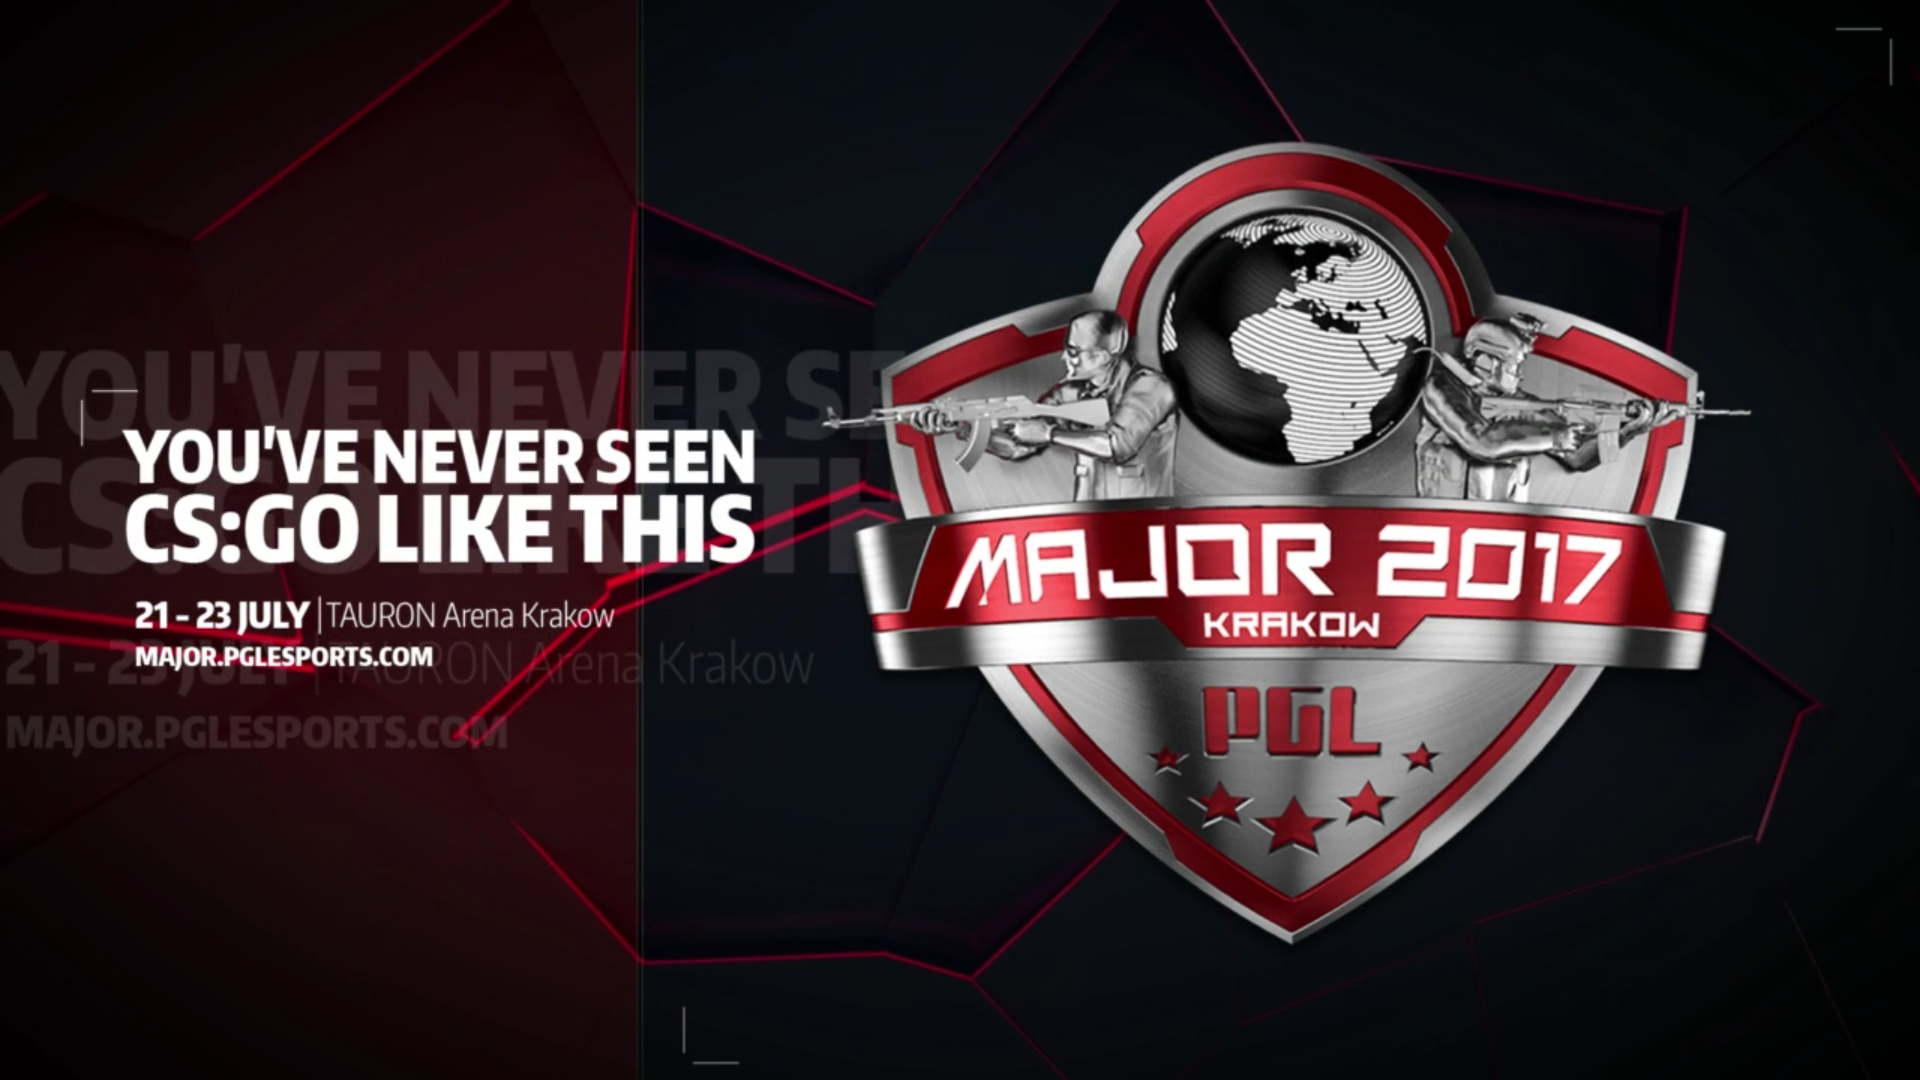 CS:GO Major Krakow